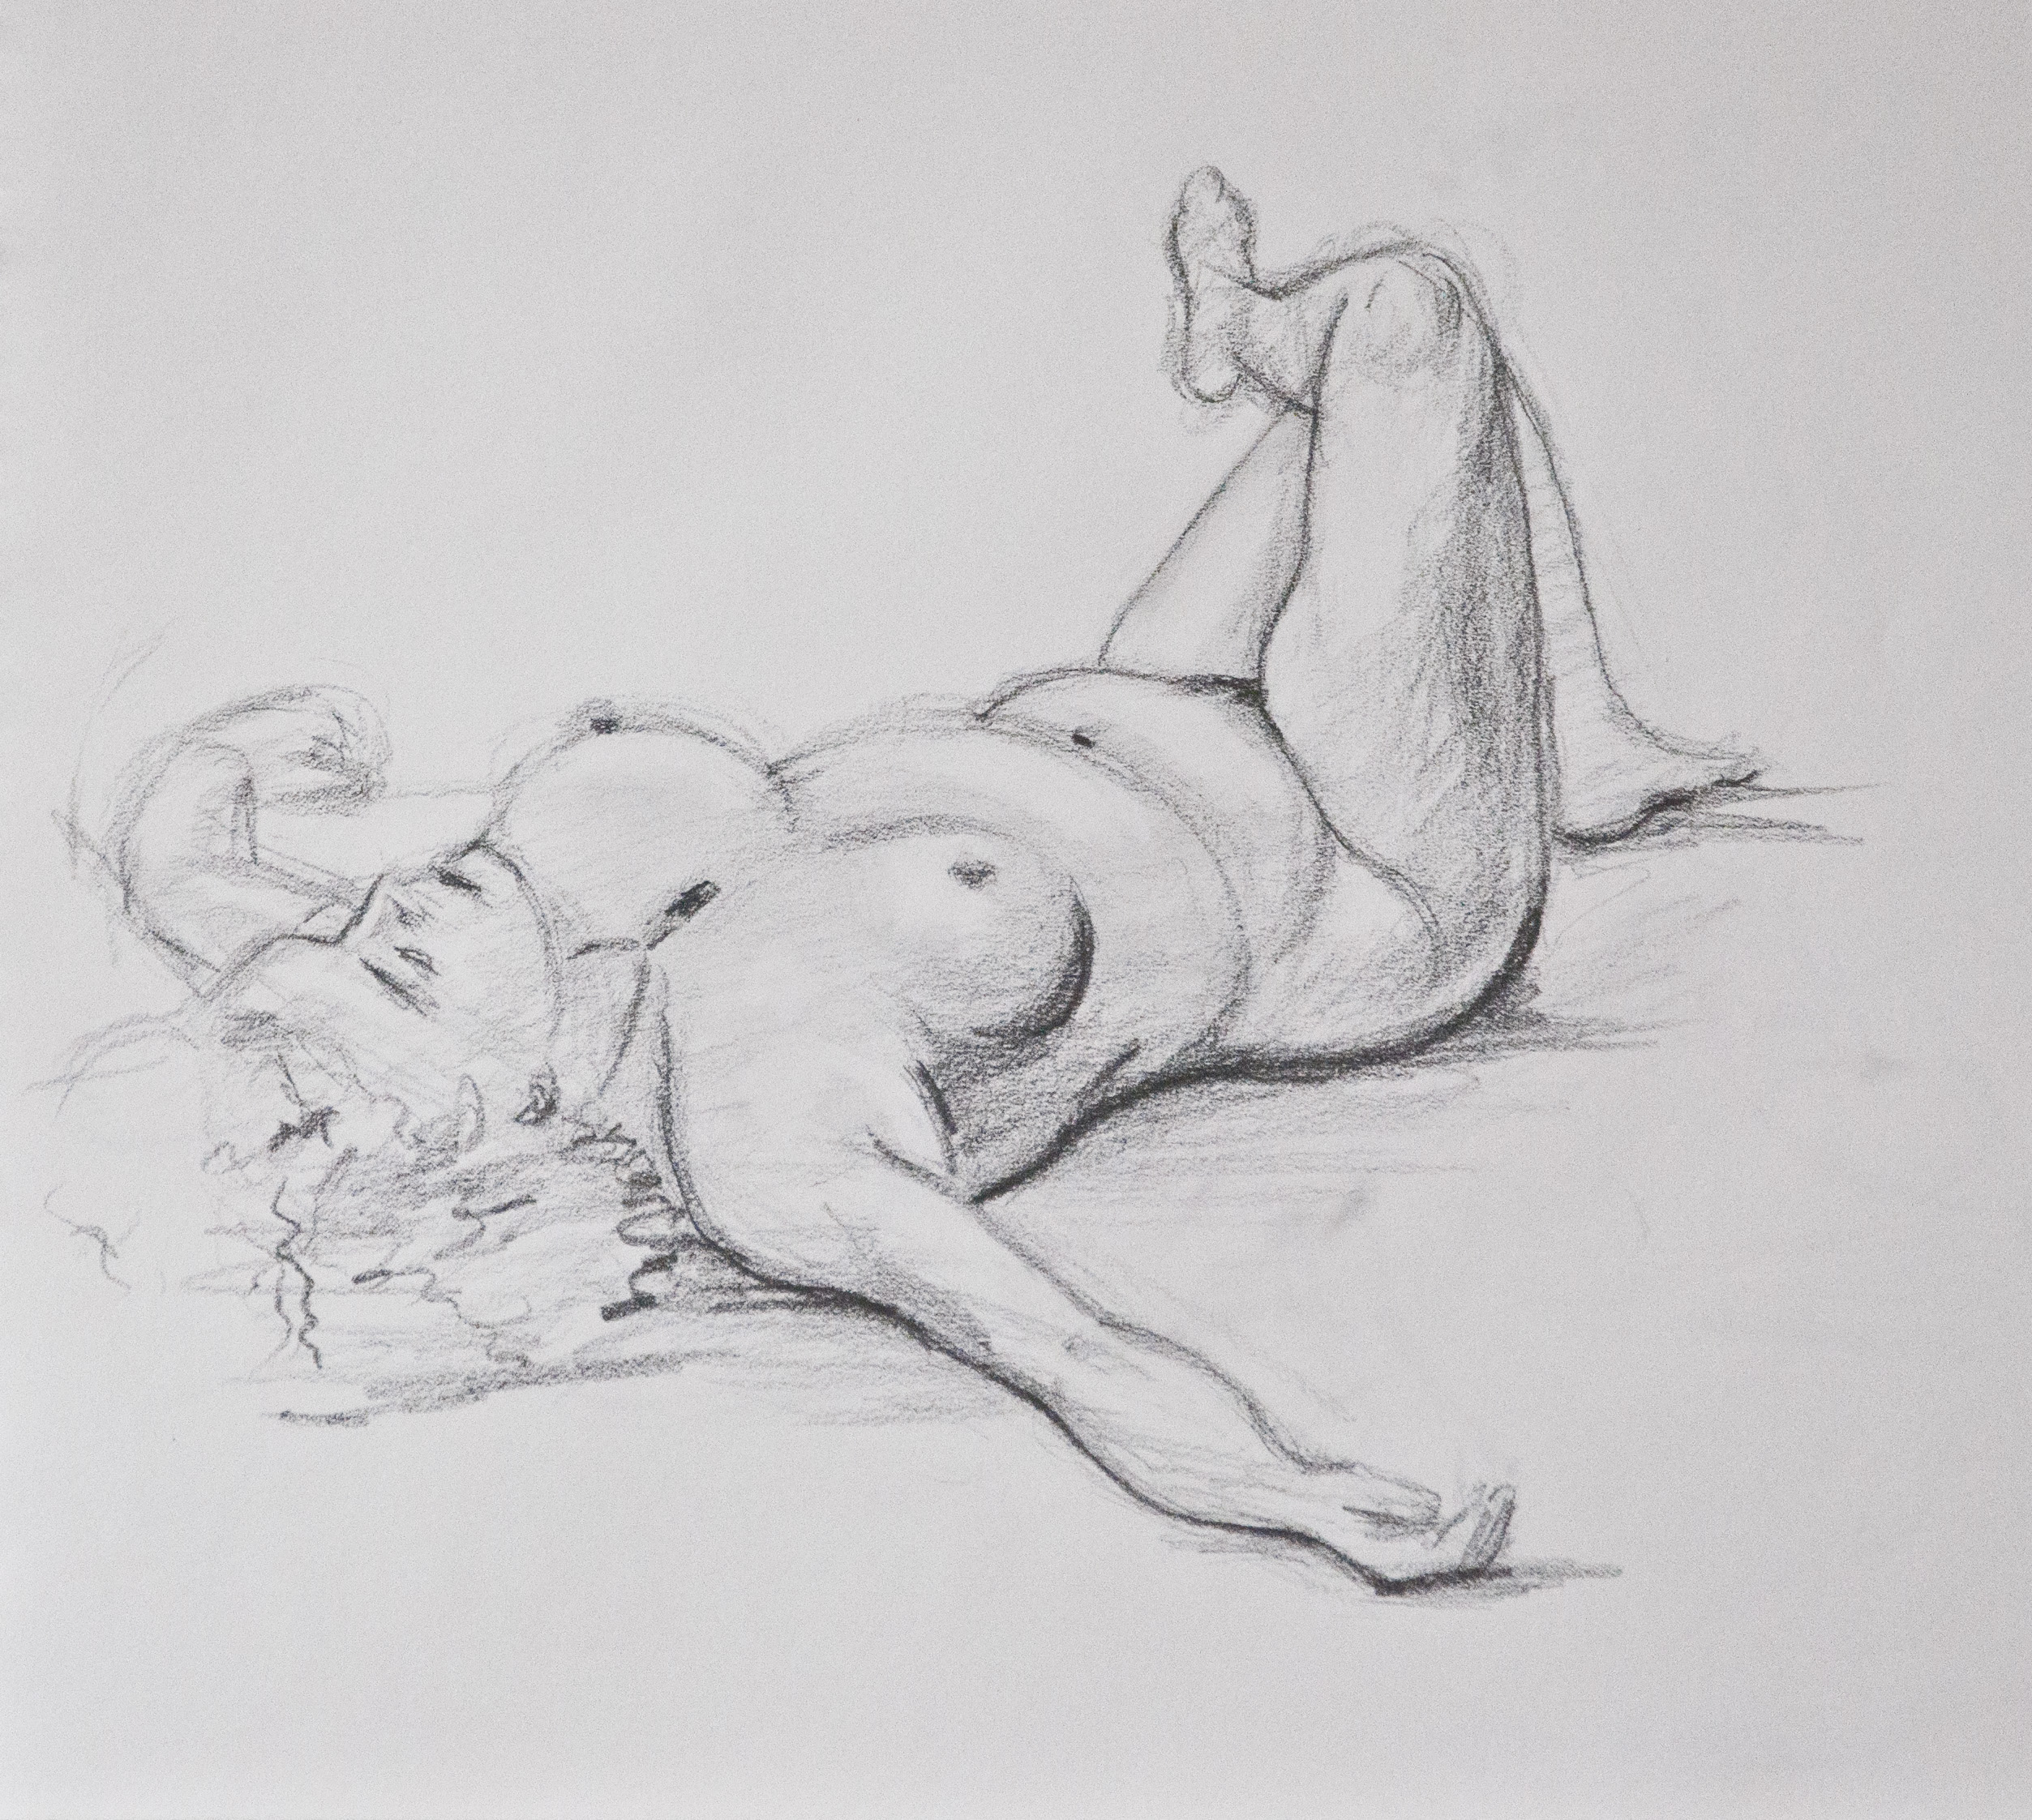 Drawings sketches of women sex